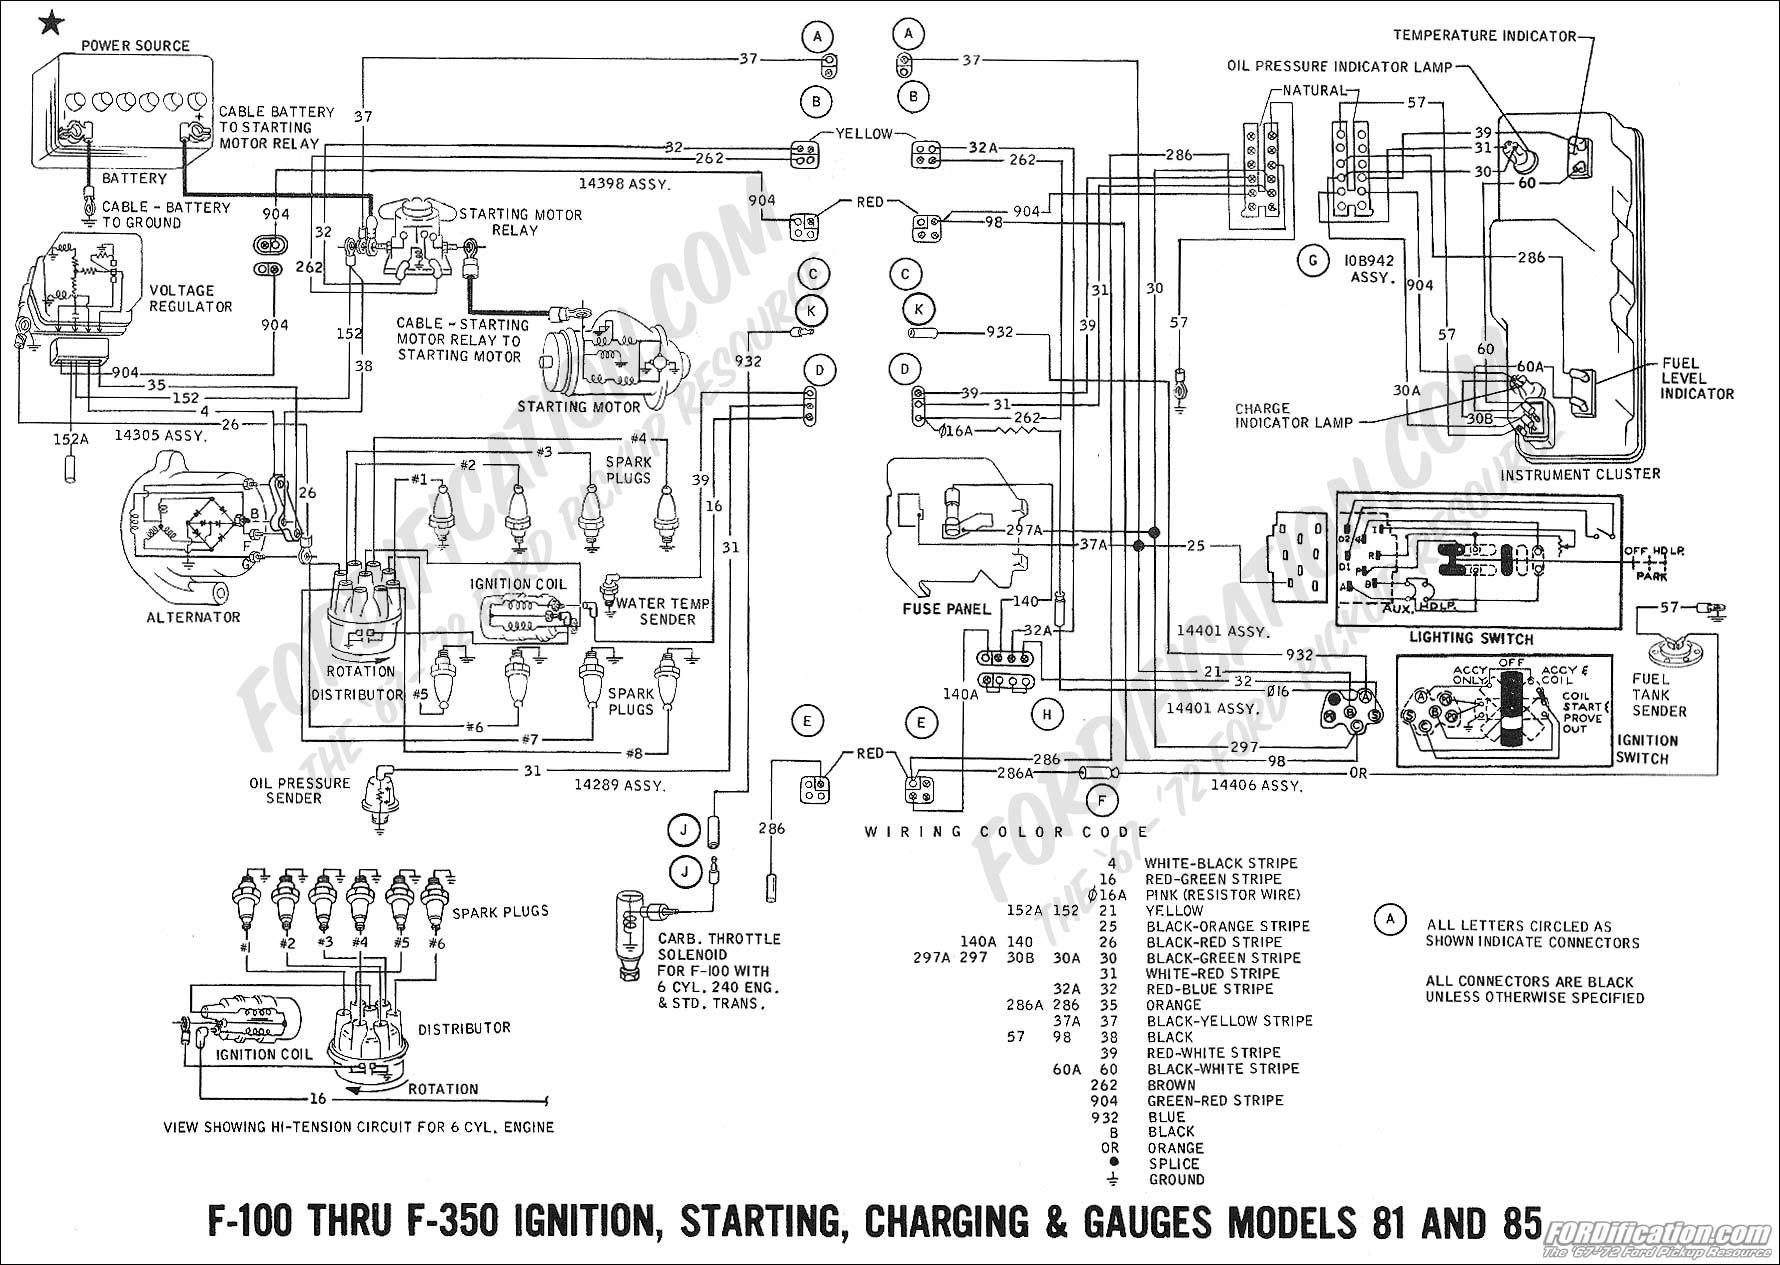 80 wiring_1969charging2_11e20ef93683157eb5c91a9f1025e72be7c50ad3 wiring diagram for 1964 ford f100 the wiring diagram 2002 F250 Wiring Diagram at gsmx.co